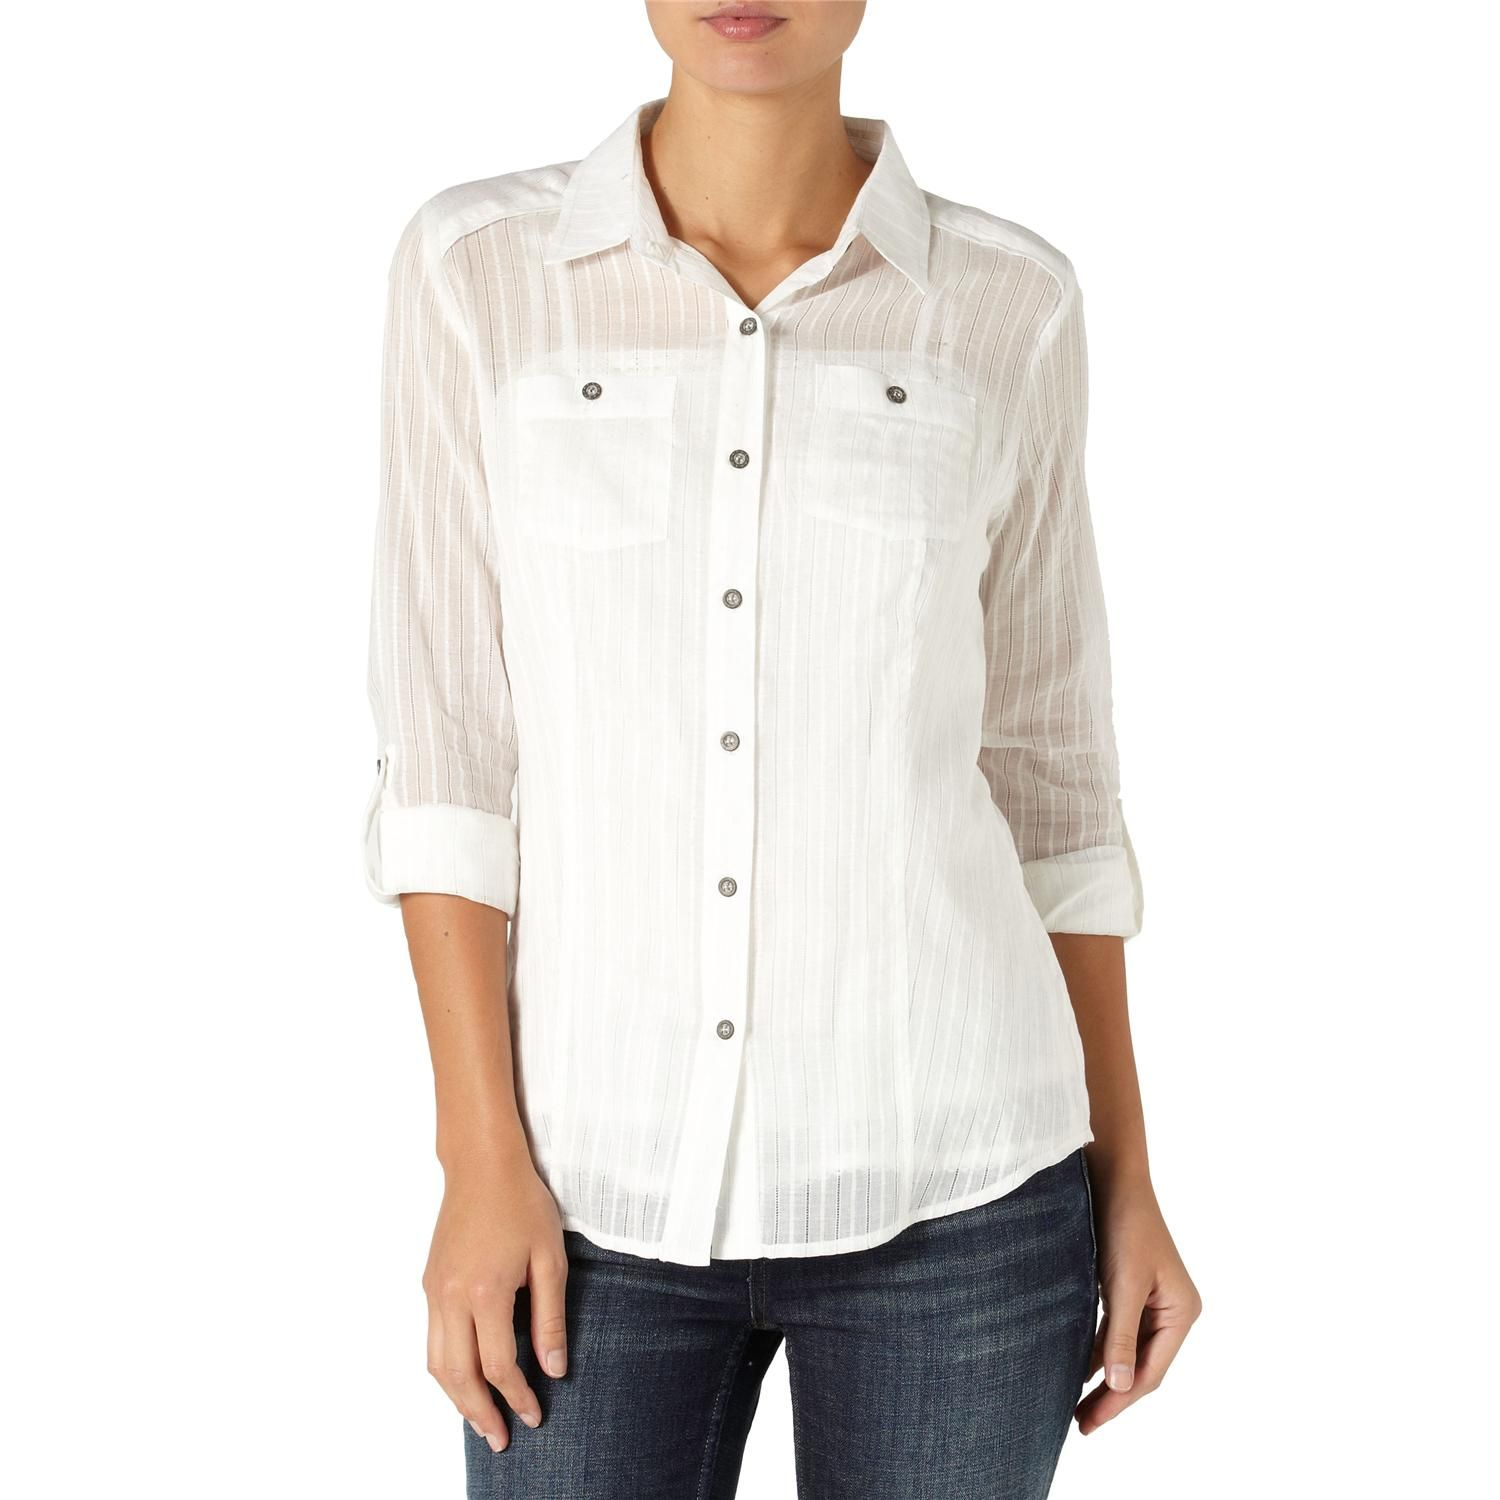 Quiksilver White Water Button Down Shirt - Women's | Shirts ...